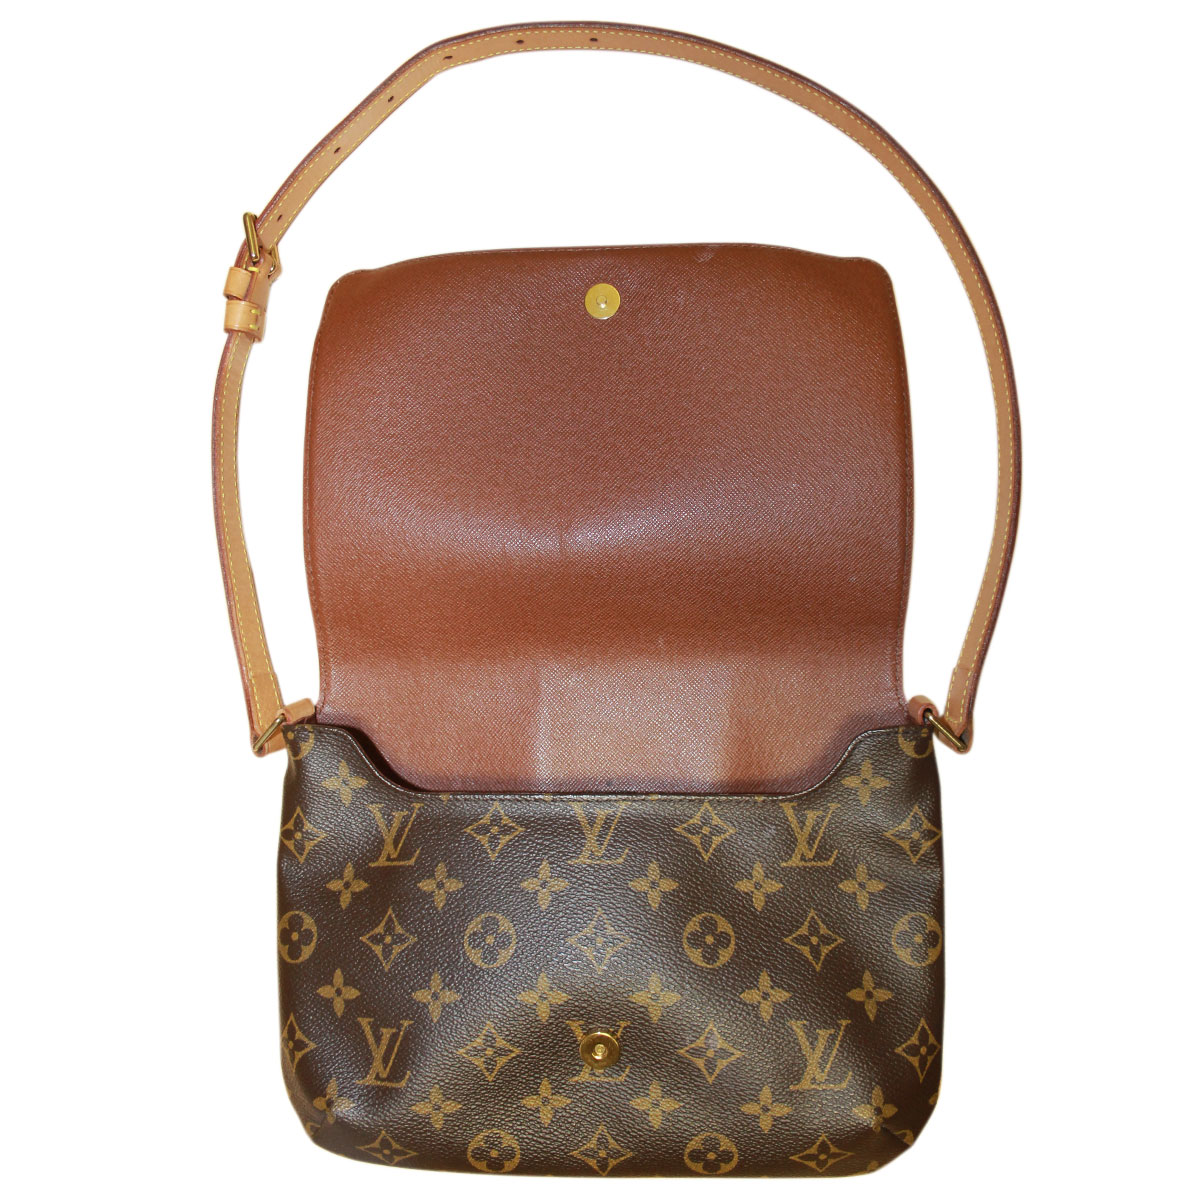 louis vuitton musette tango monogram canvas handbag. Black Bedroom Furniture Sets. Home Design Ideas